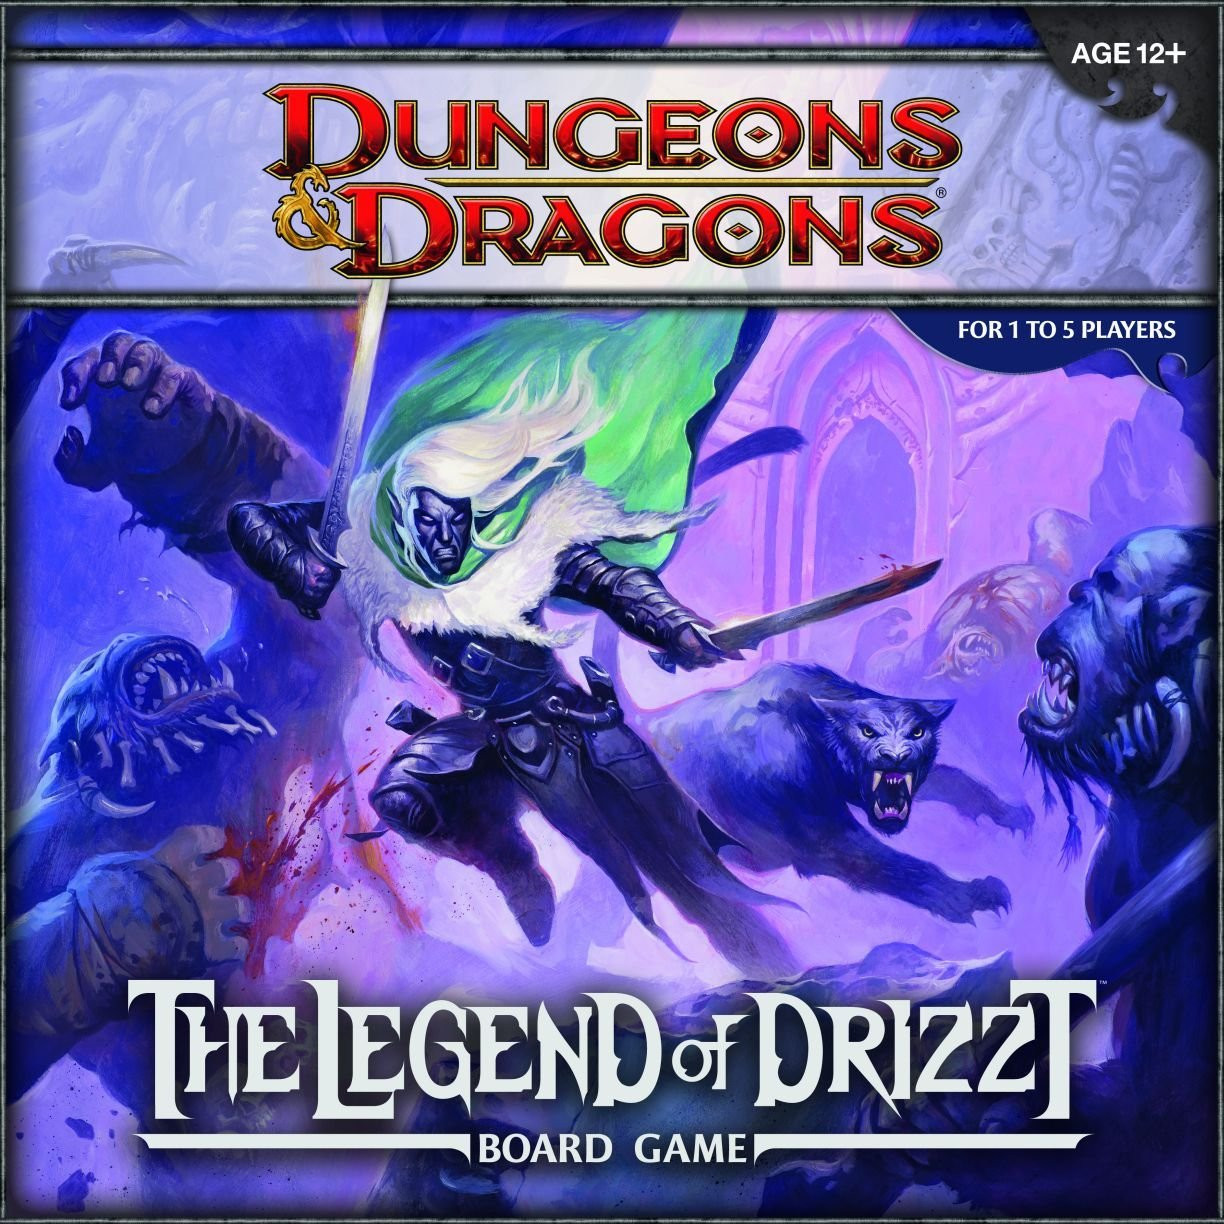 Dungeons dragons the legend of drizzt board game - Dungeon gioco da tavolo ...